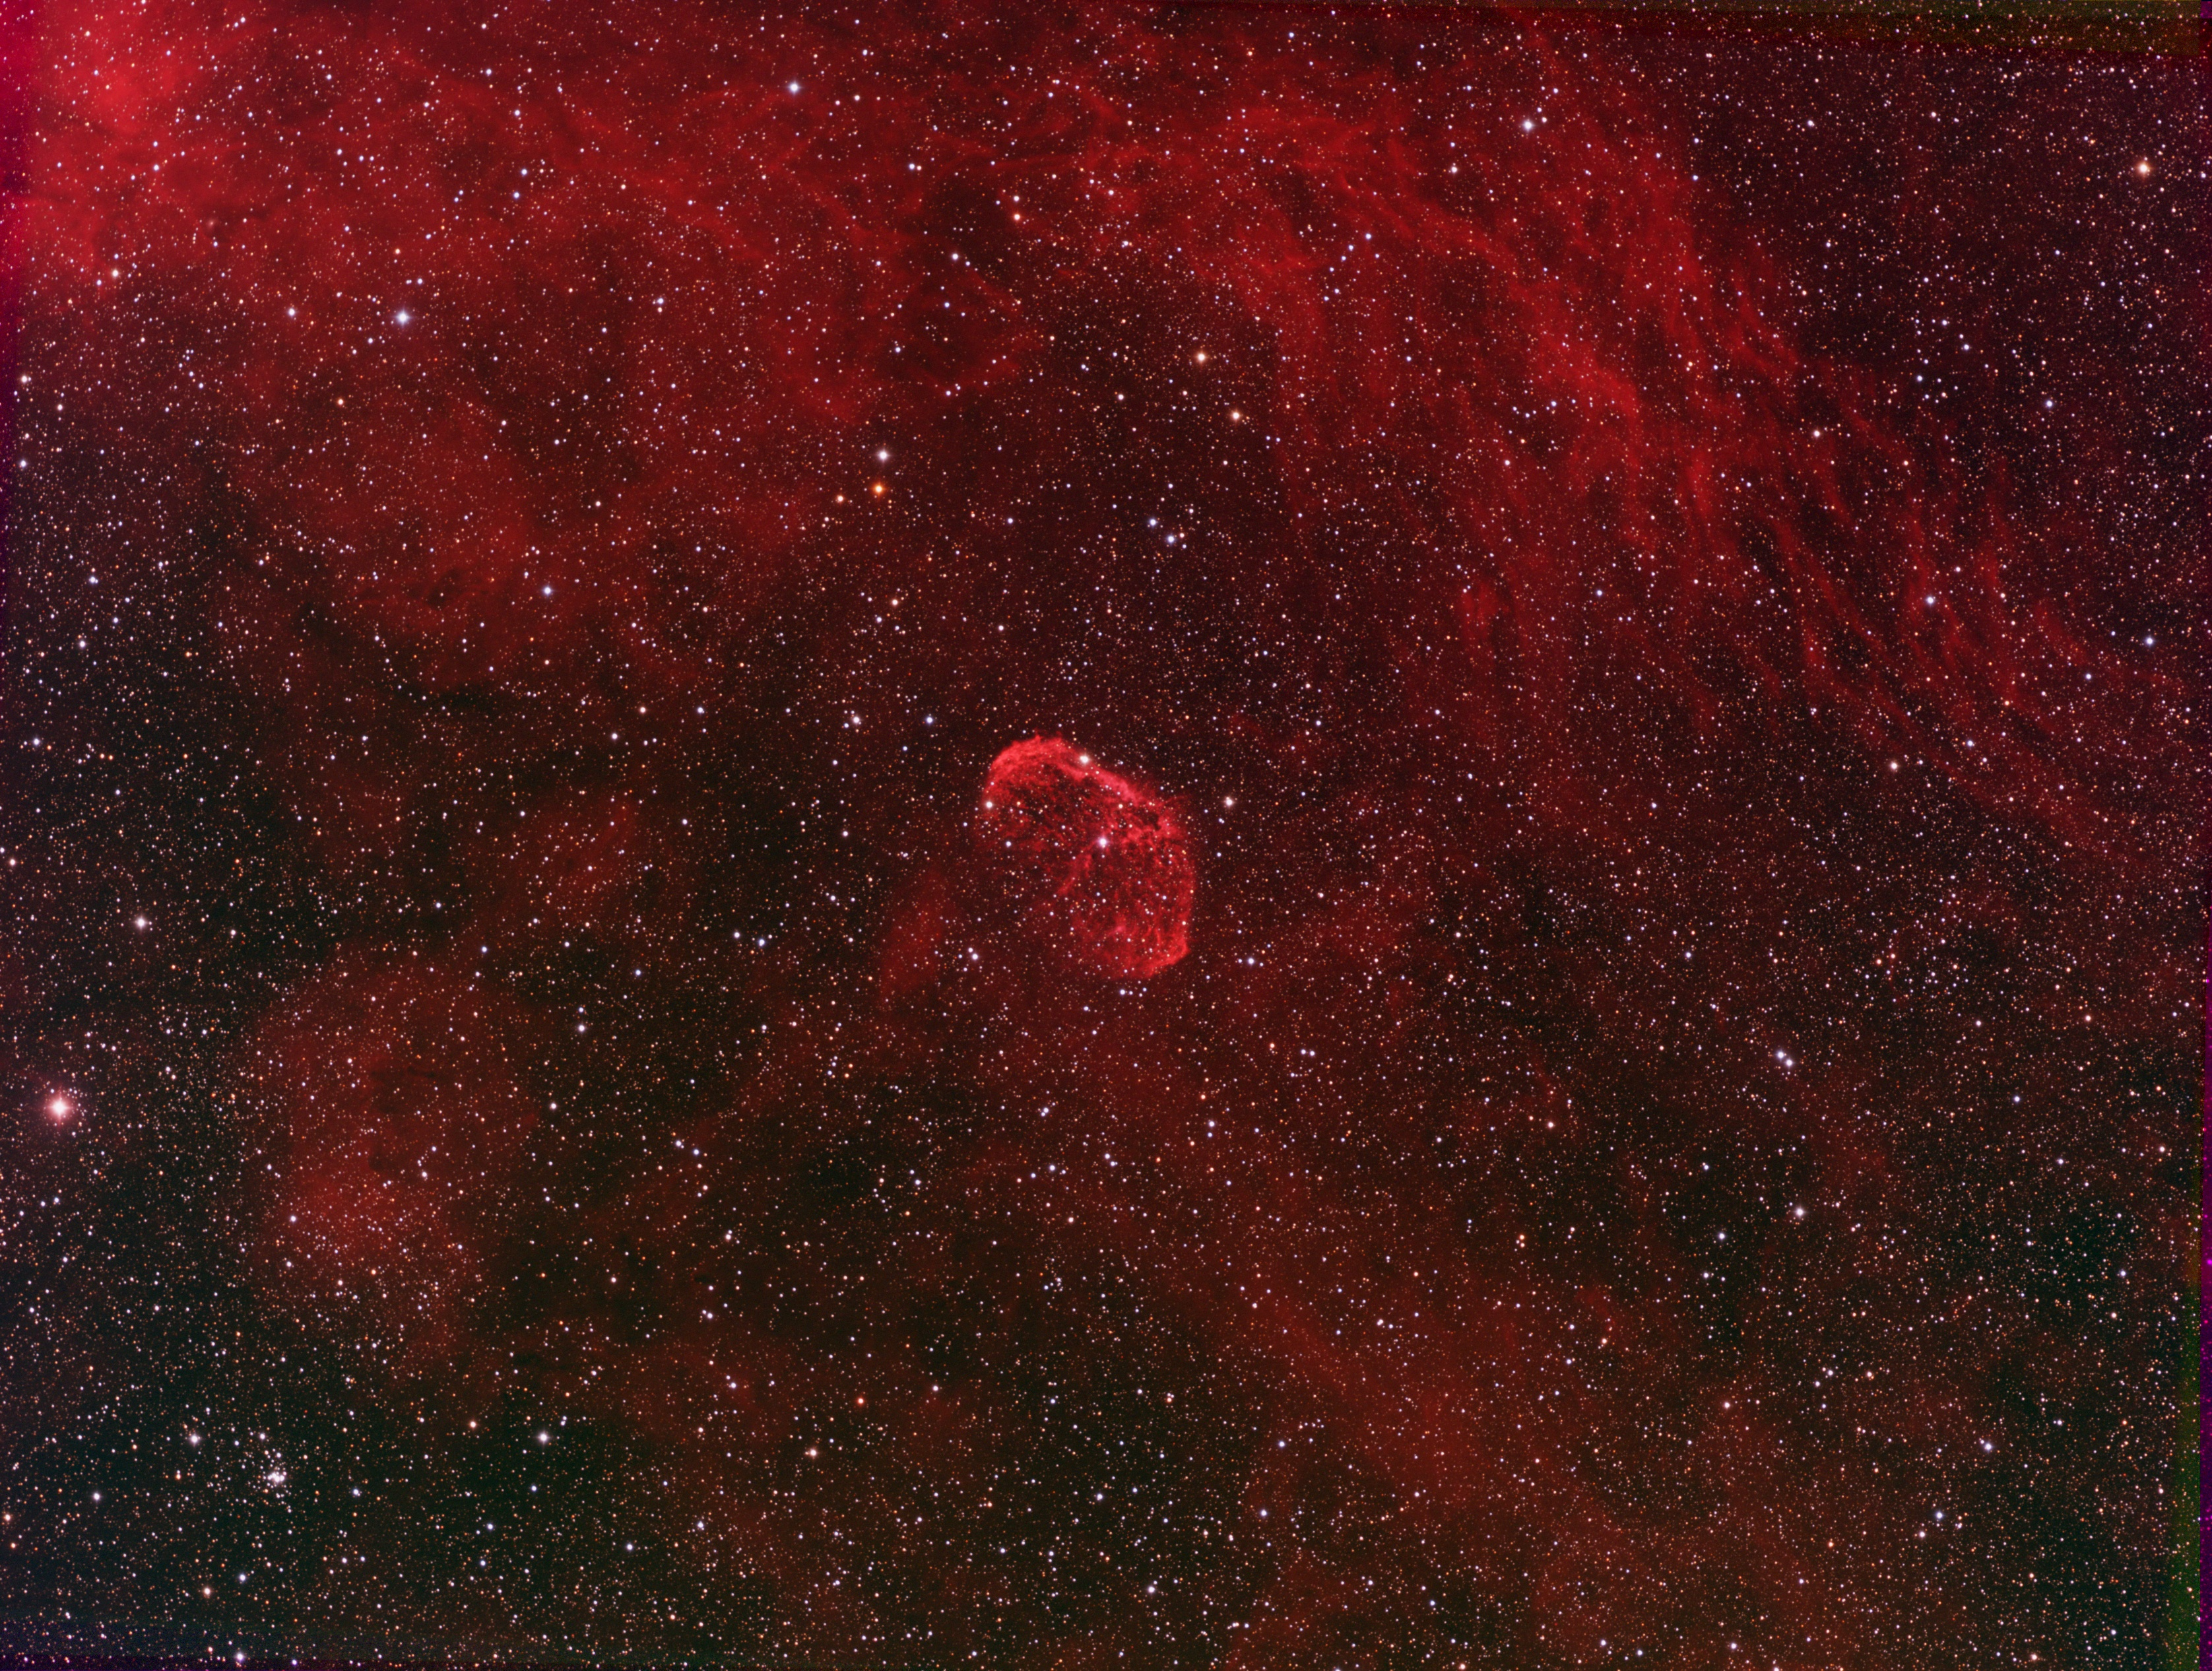 NGC 6888 - The Crescent Nebula